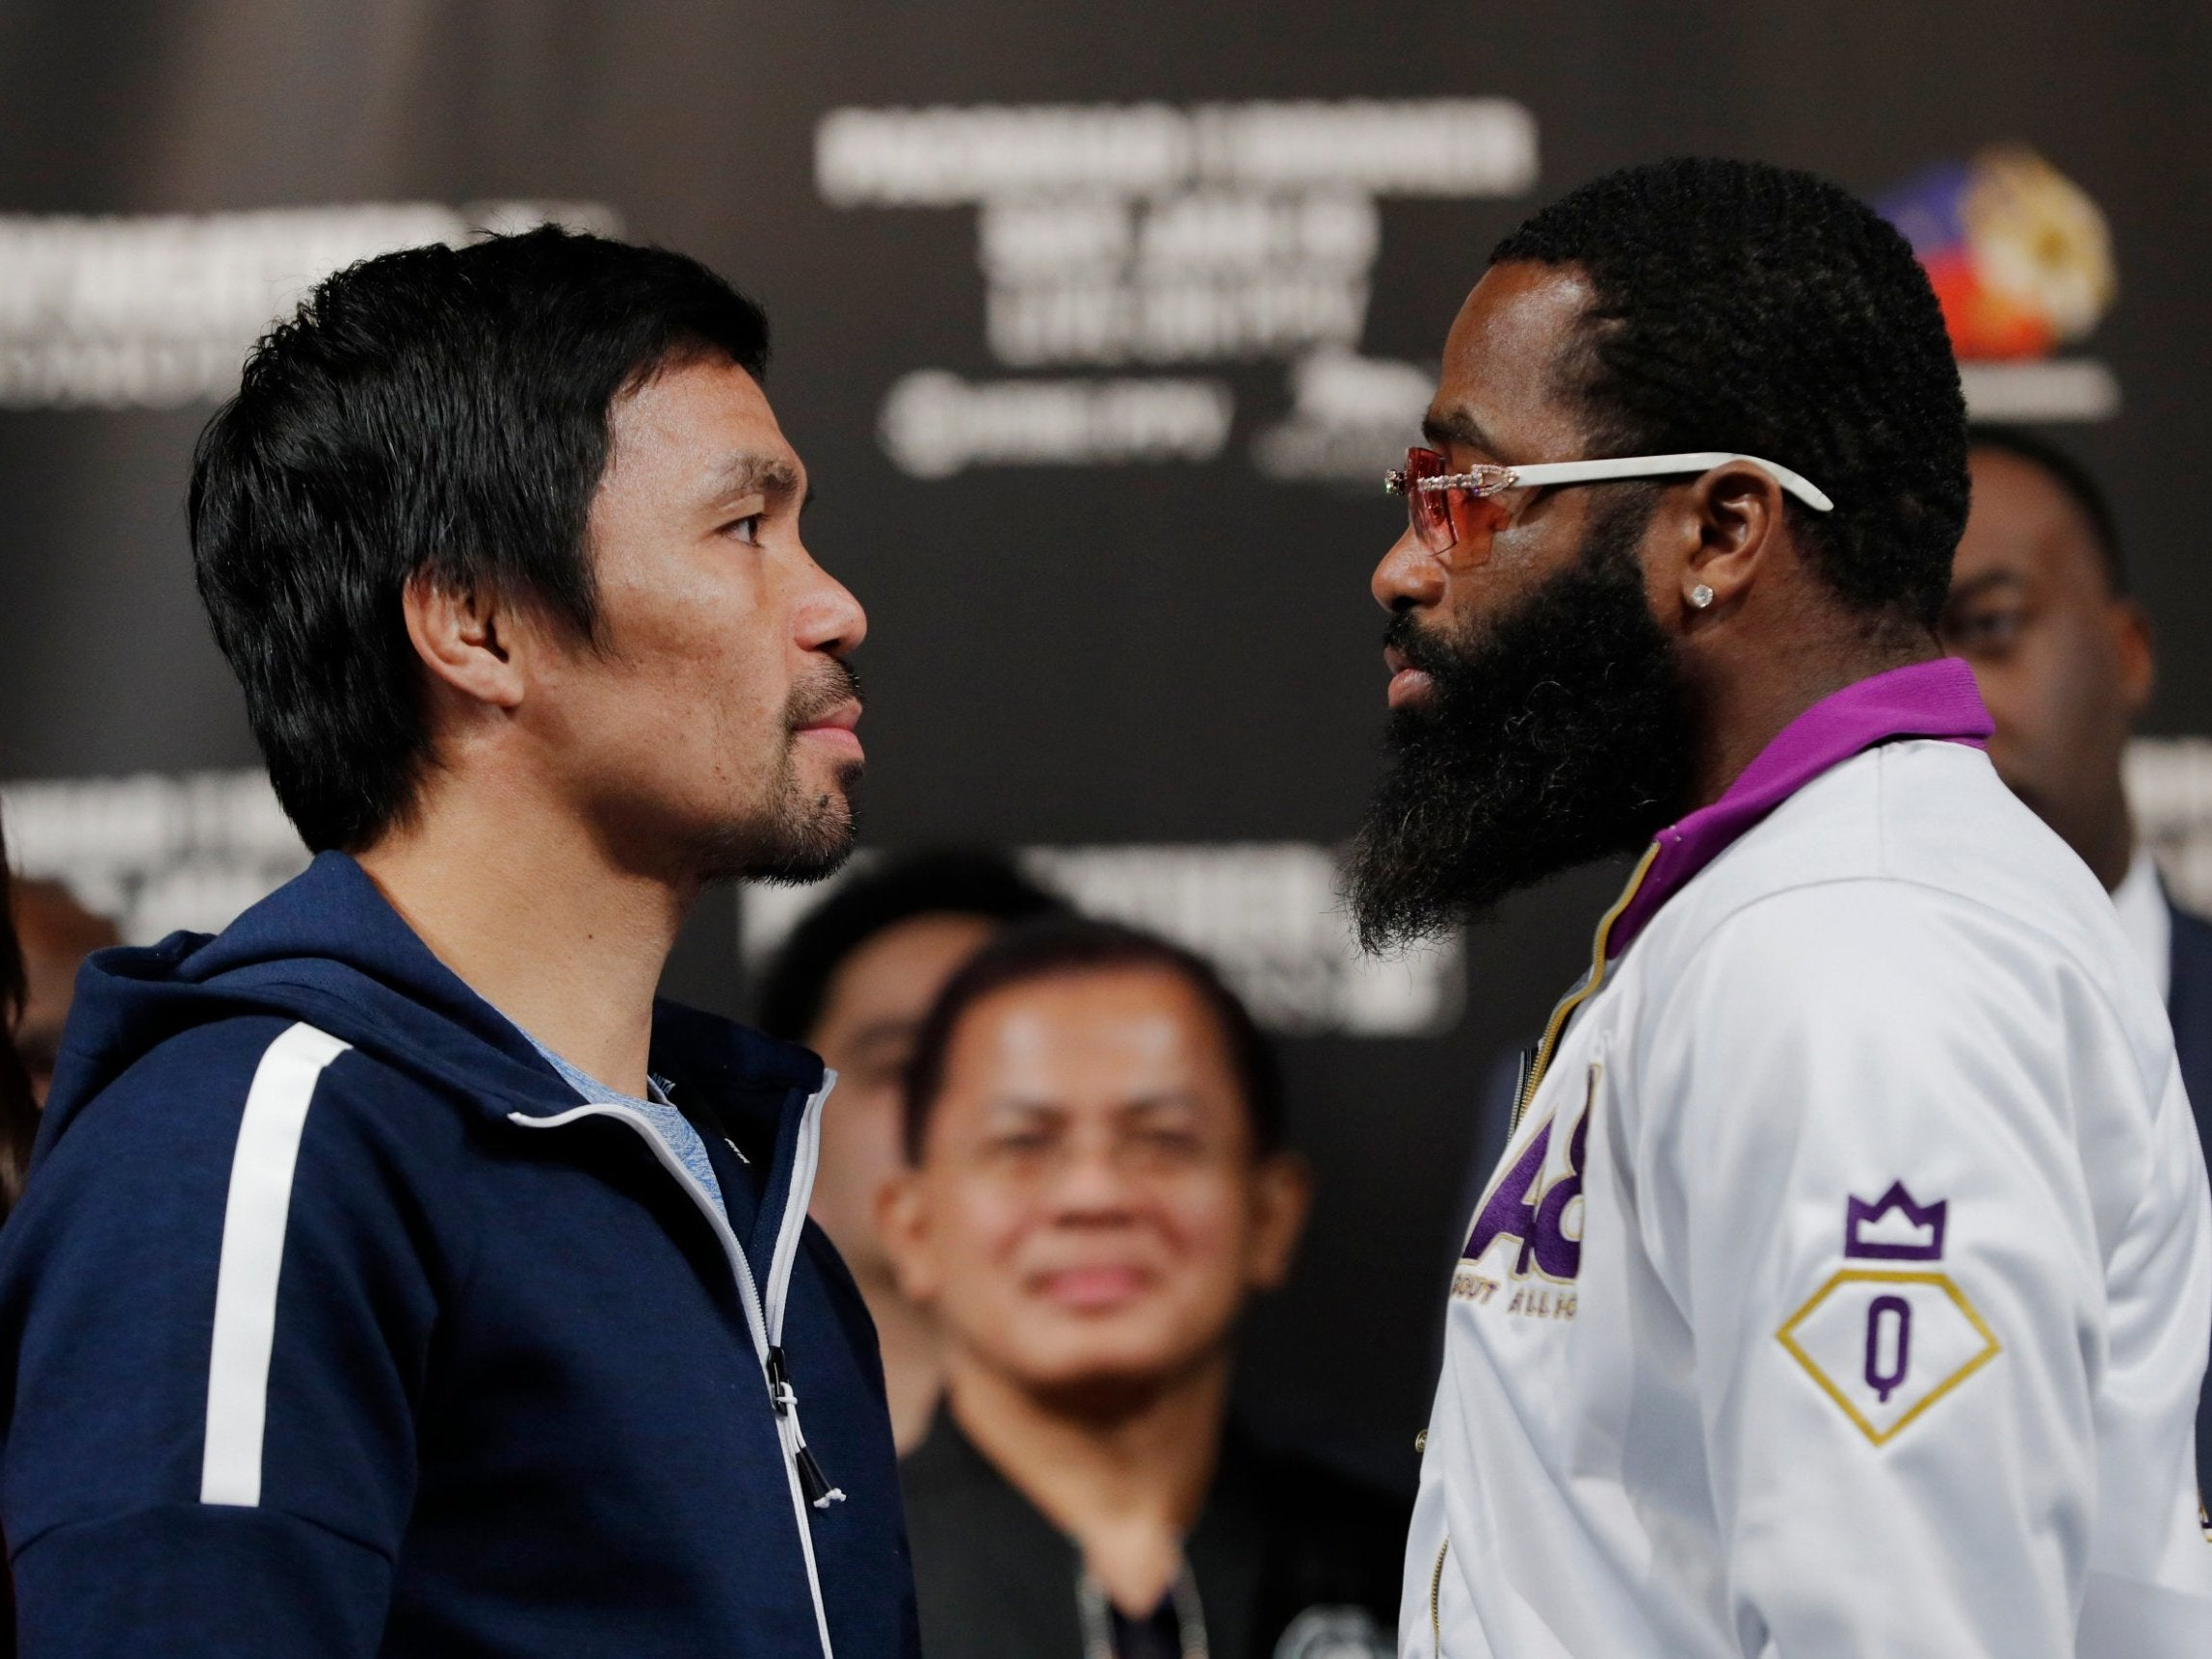 Manny Pacquiao vs Adrien Broner: American promises to 'beat up' Pacman and start a Las Vegas 'block party'